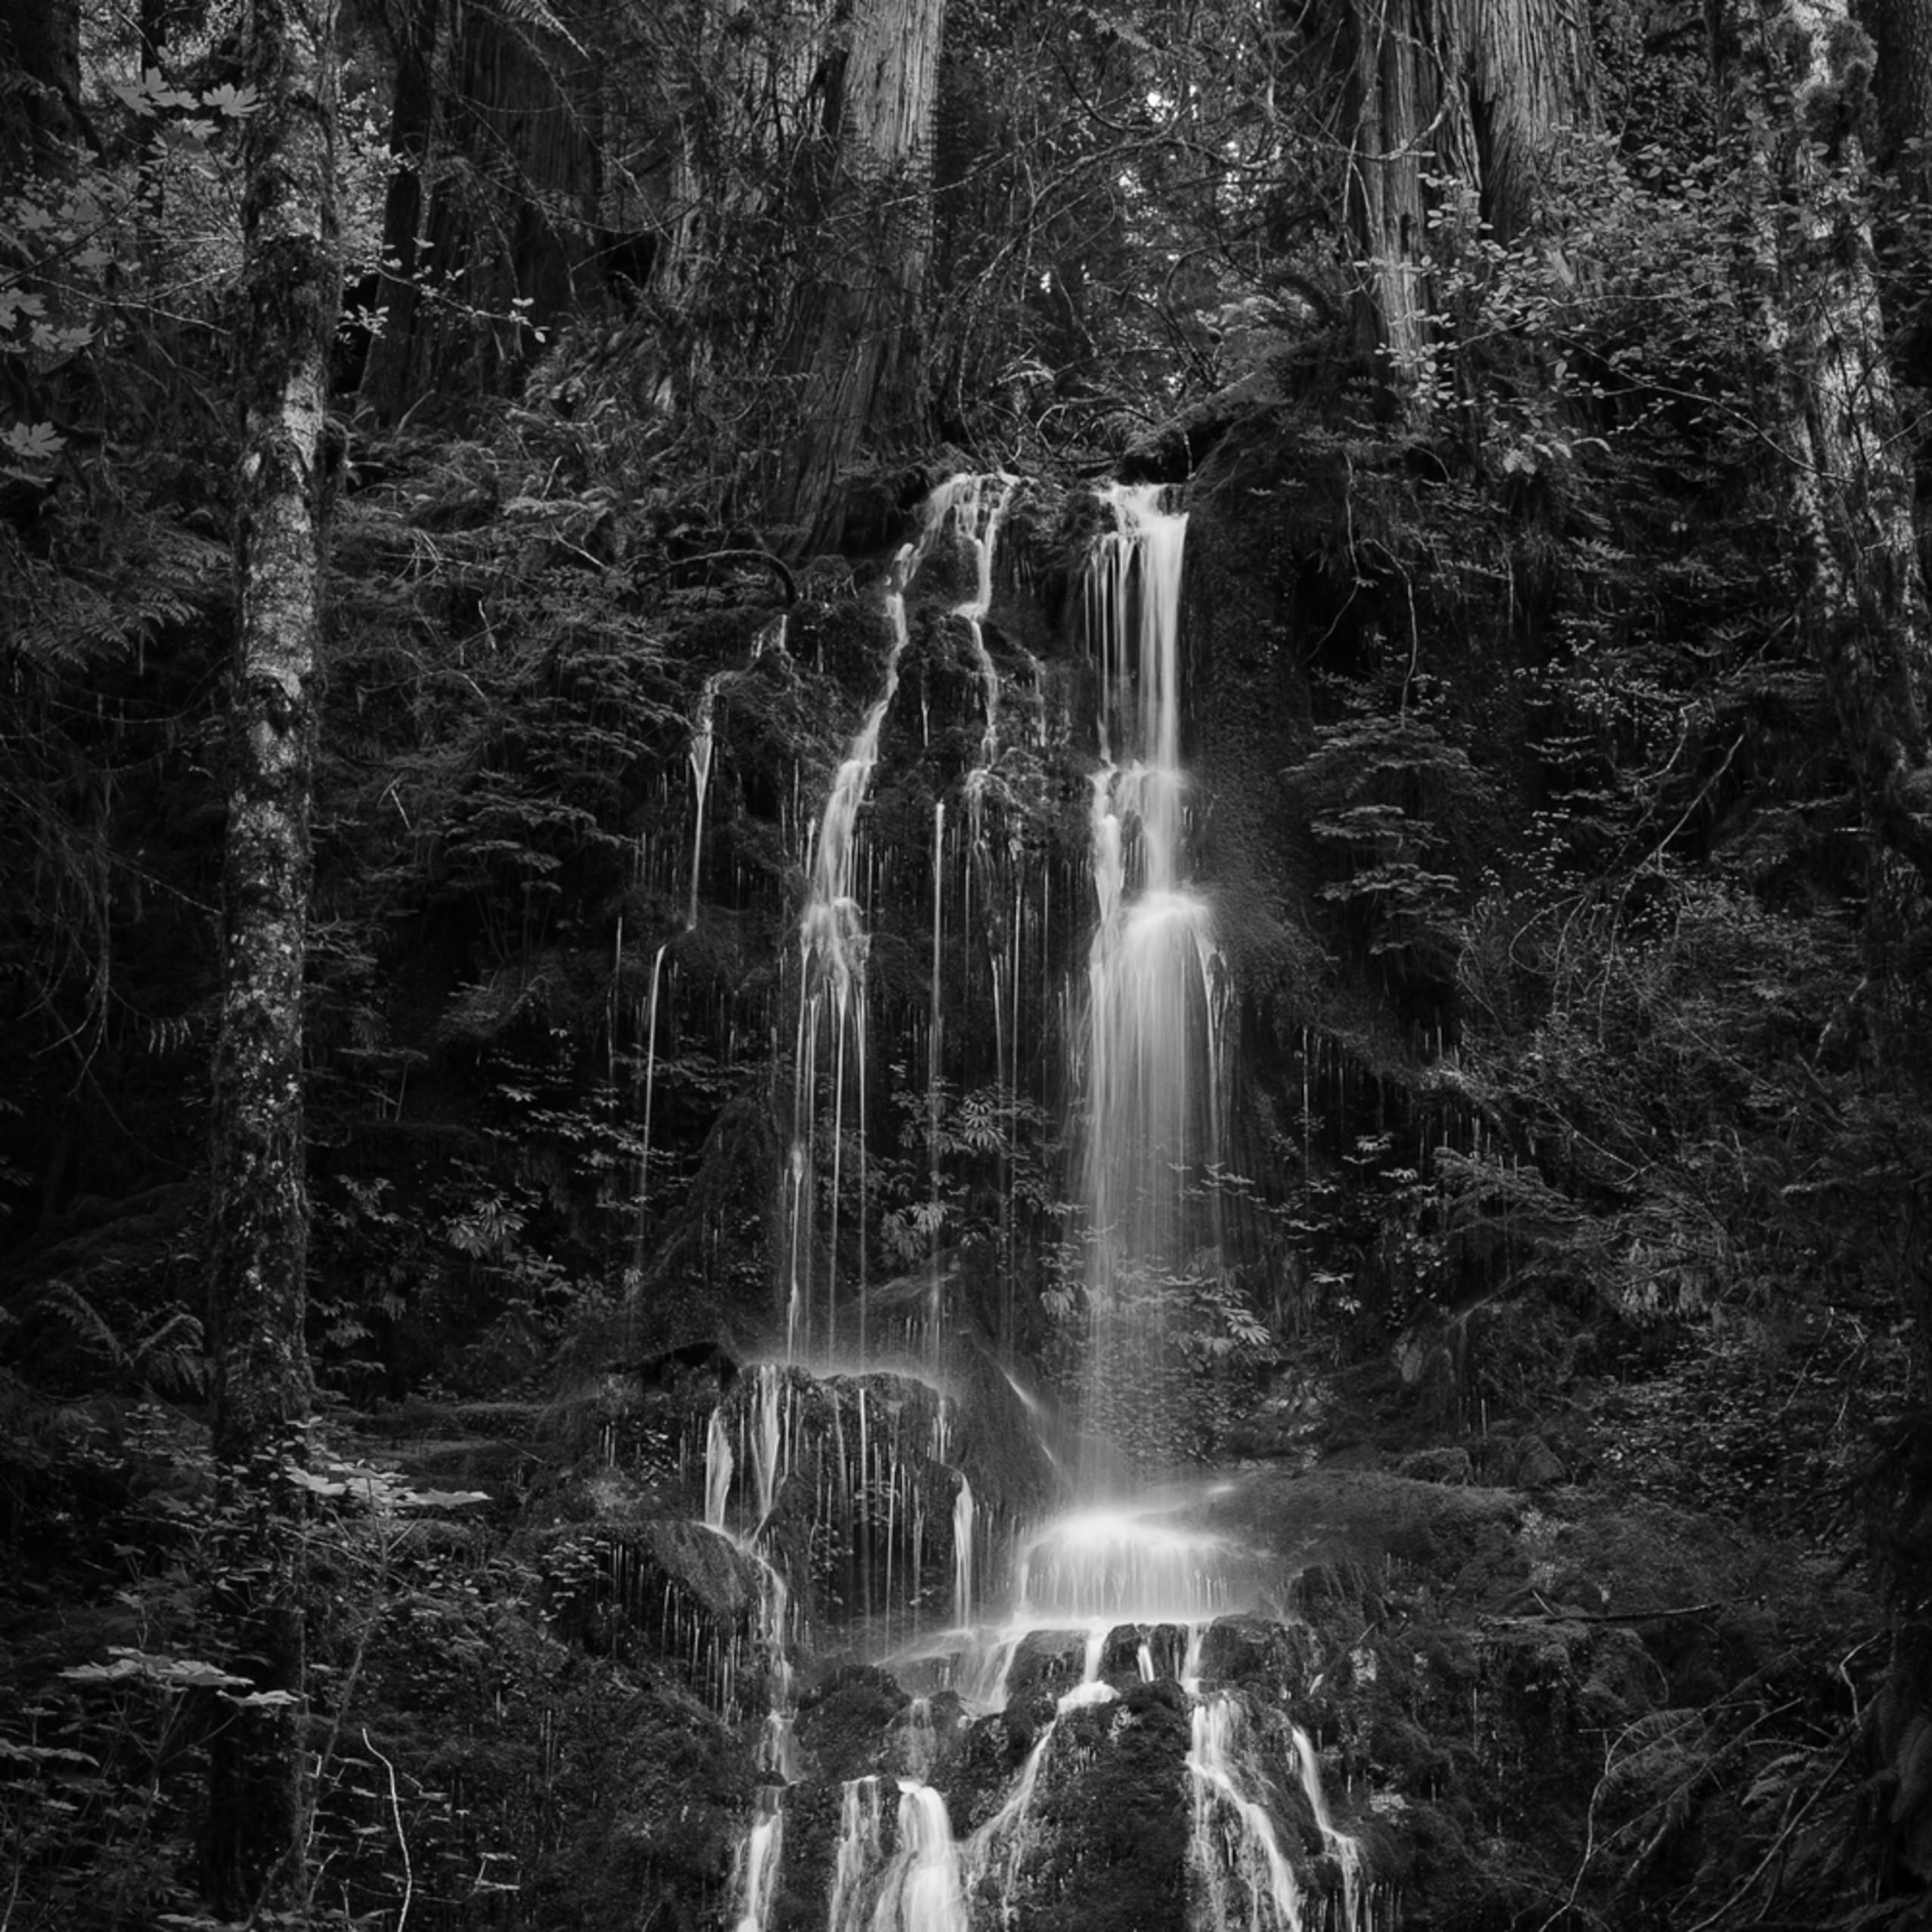 Springtime waterfall olympic national park washington 2016 cnpxsr